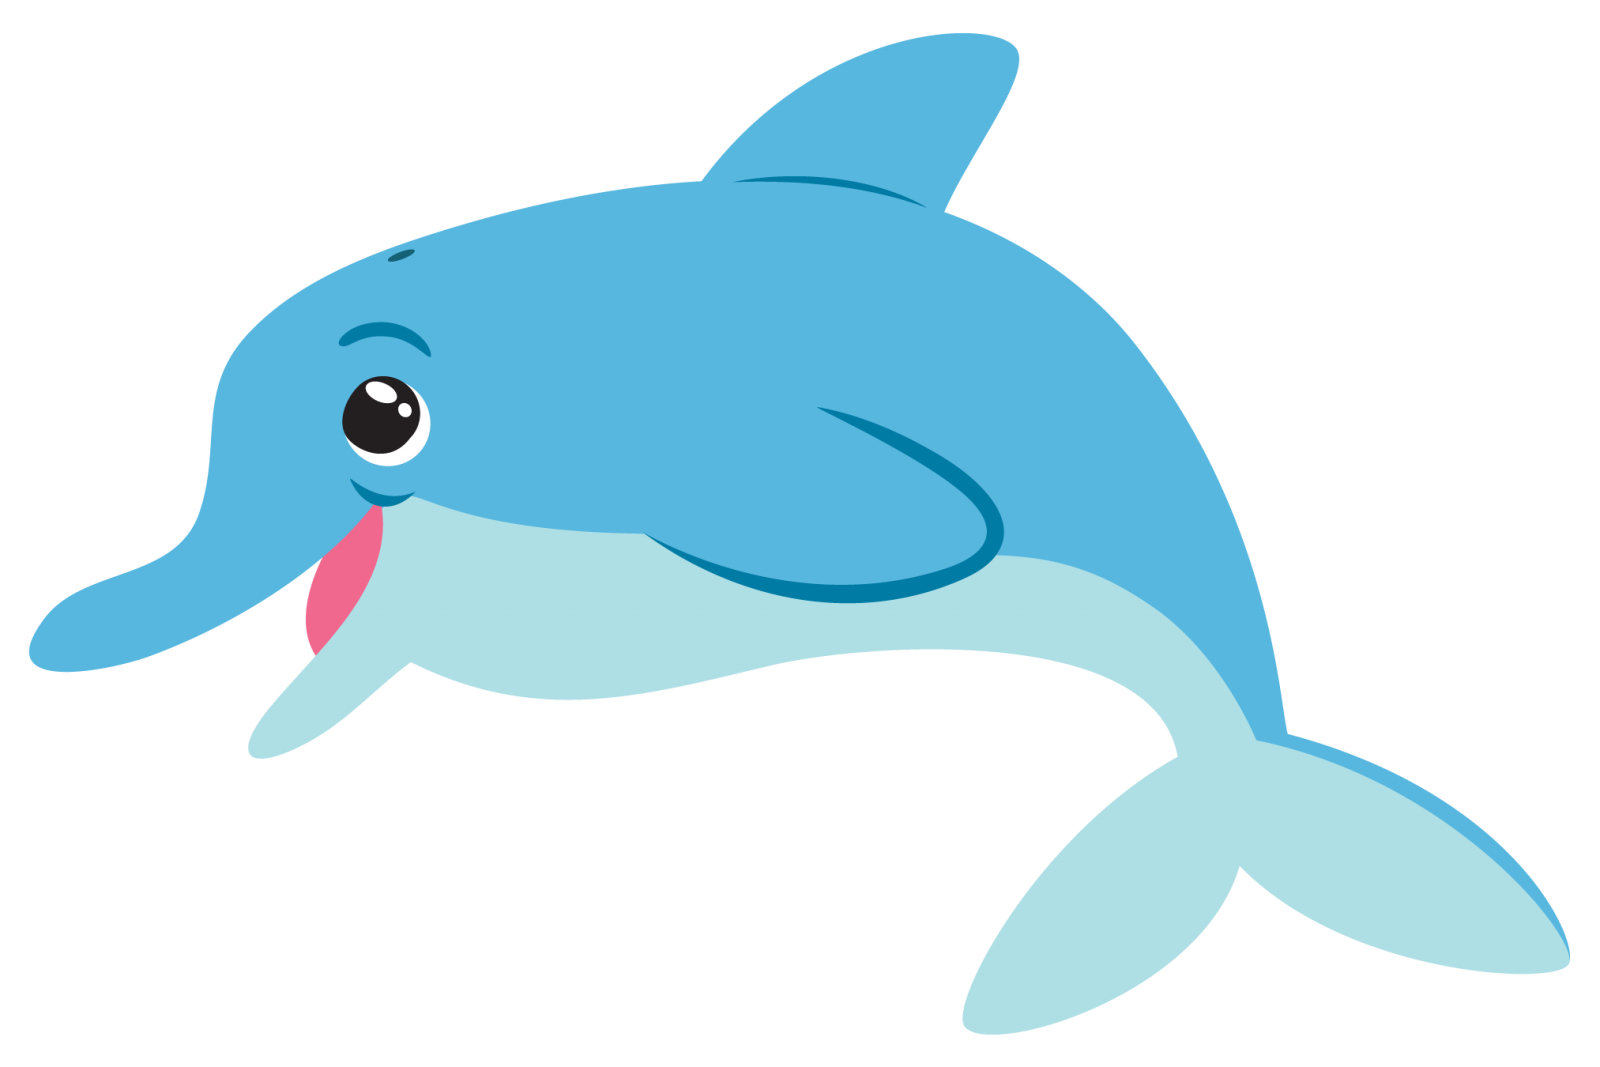 Bottlenose clip art cliparts. Dolphin clipart dolphin swimming